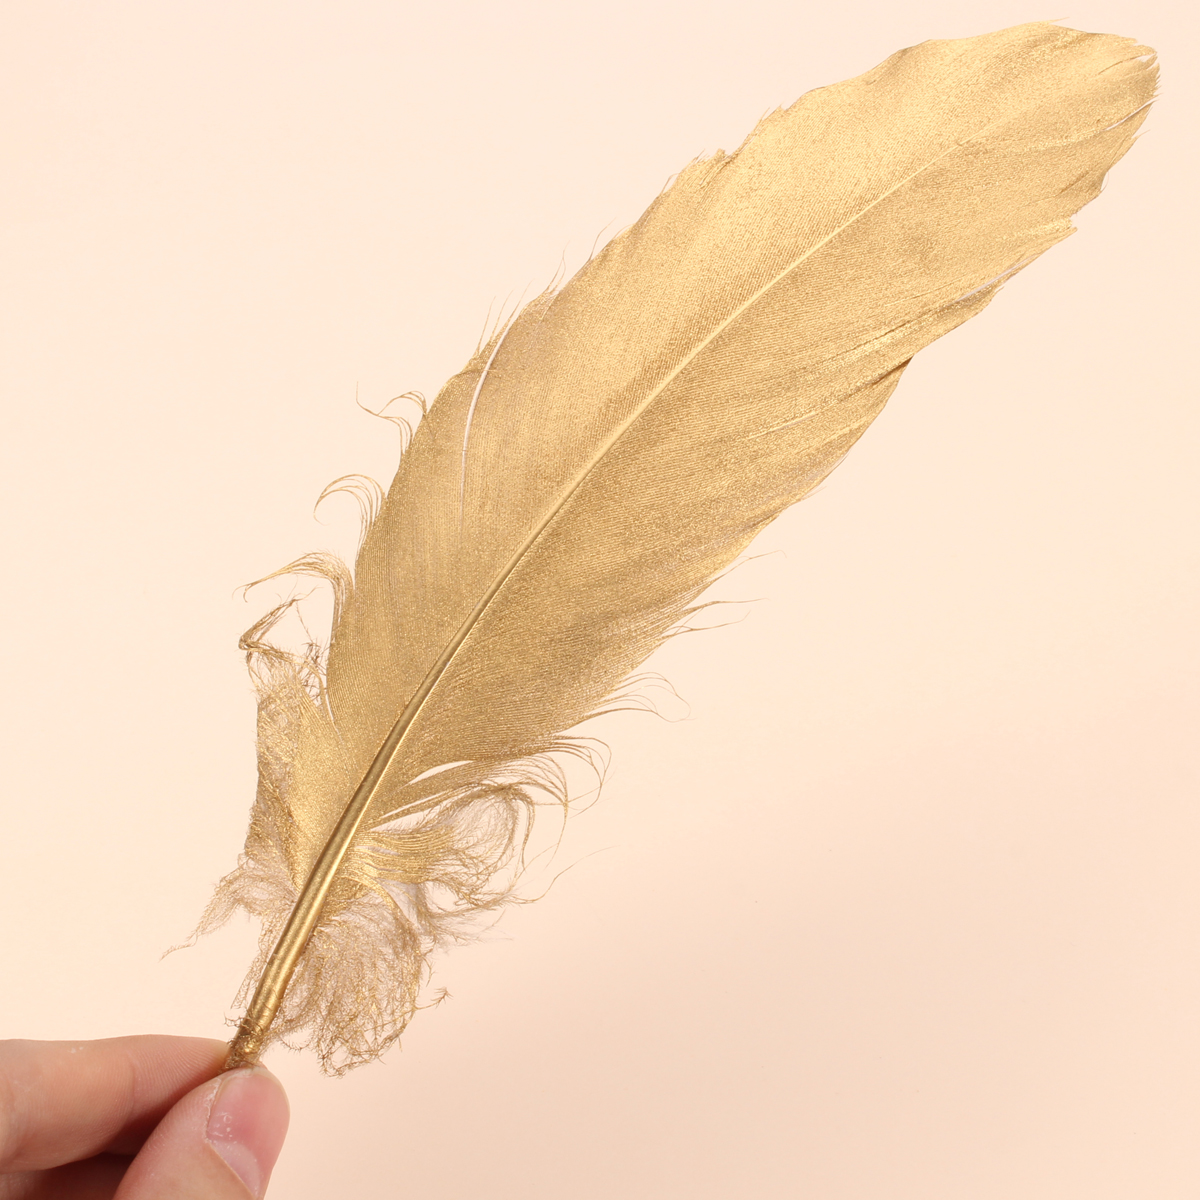 100PCS/Lot Natural Goose Feathers Ornaments Multi-Purpose DIY Crafts Birthday Christmas Wedding Decoration Party Favors Gold